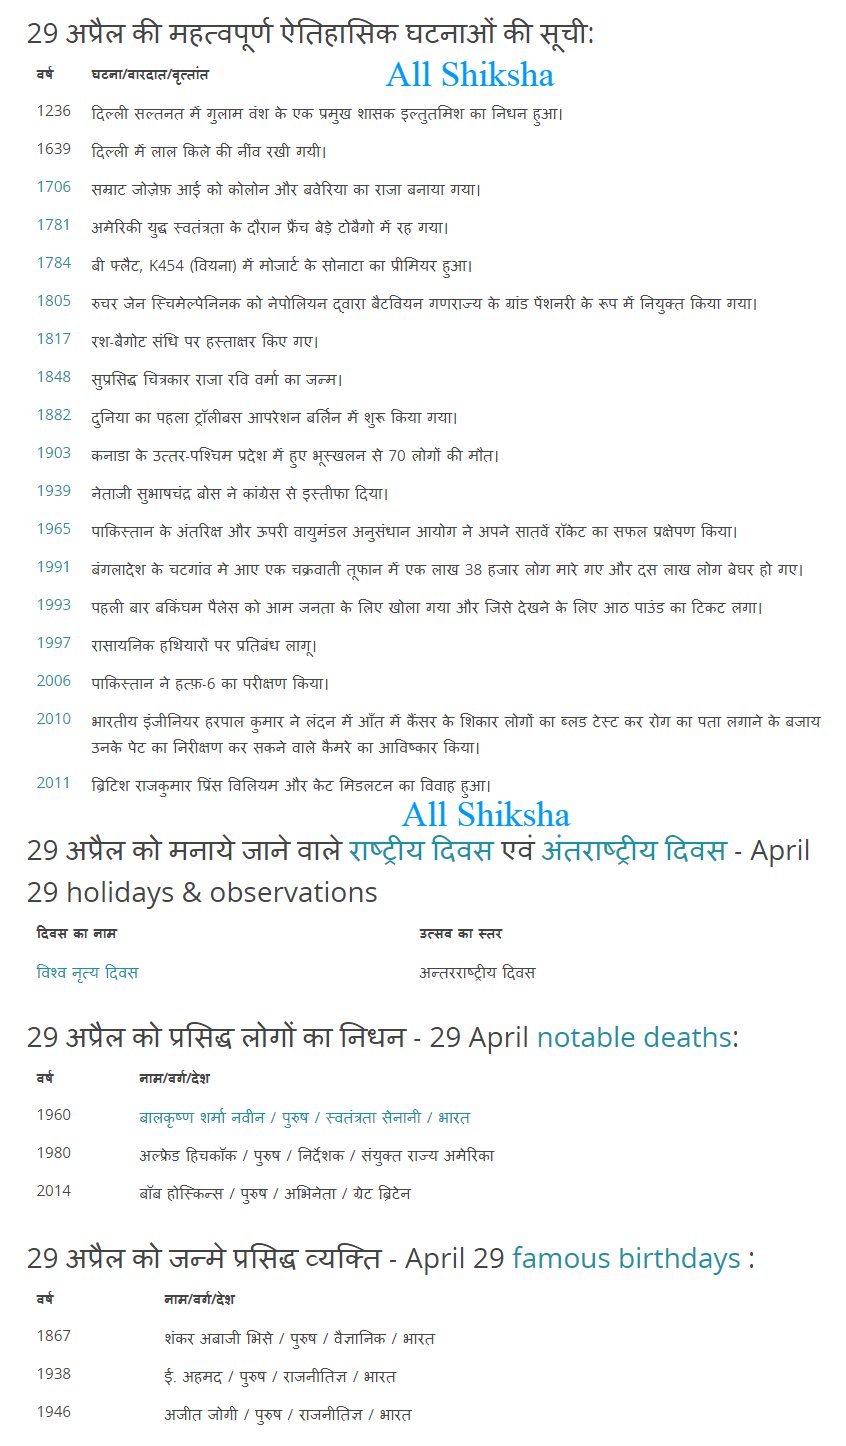 29 April In History To 1236 - 2019